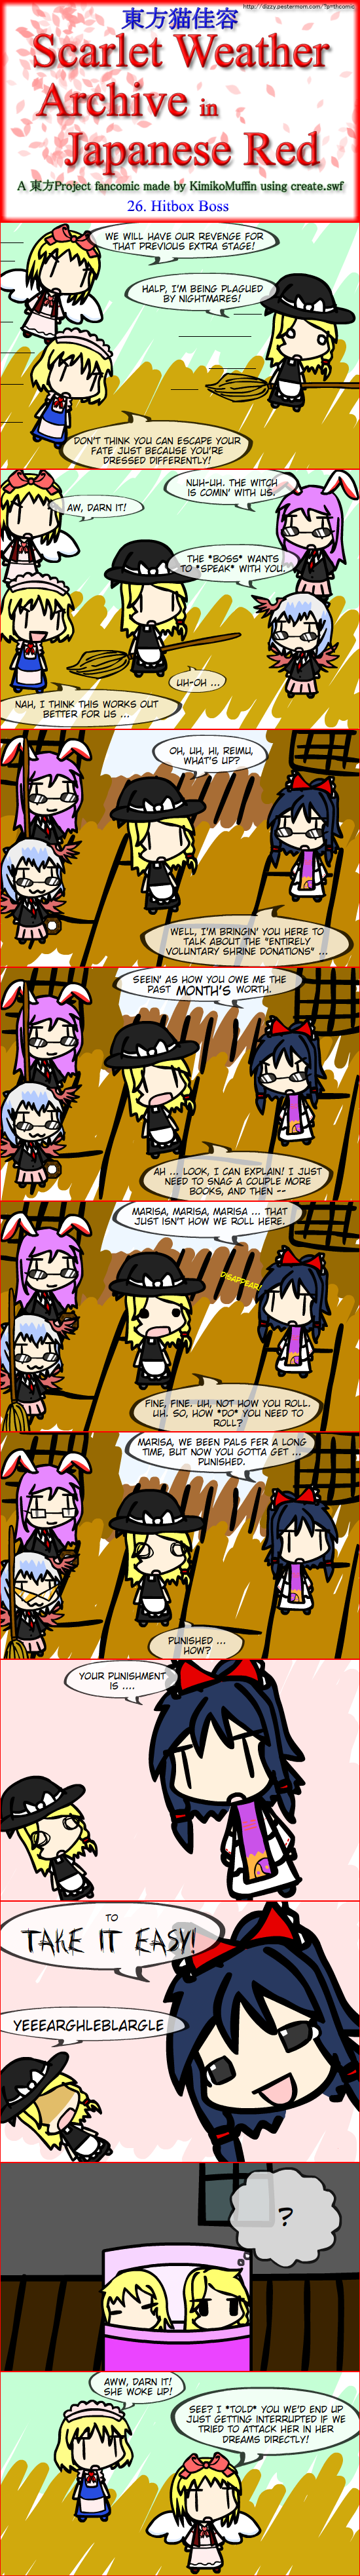 Touhou Nekokayou: Scarlet Weather Archive in Japanese Red #26